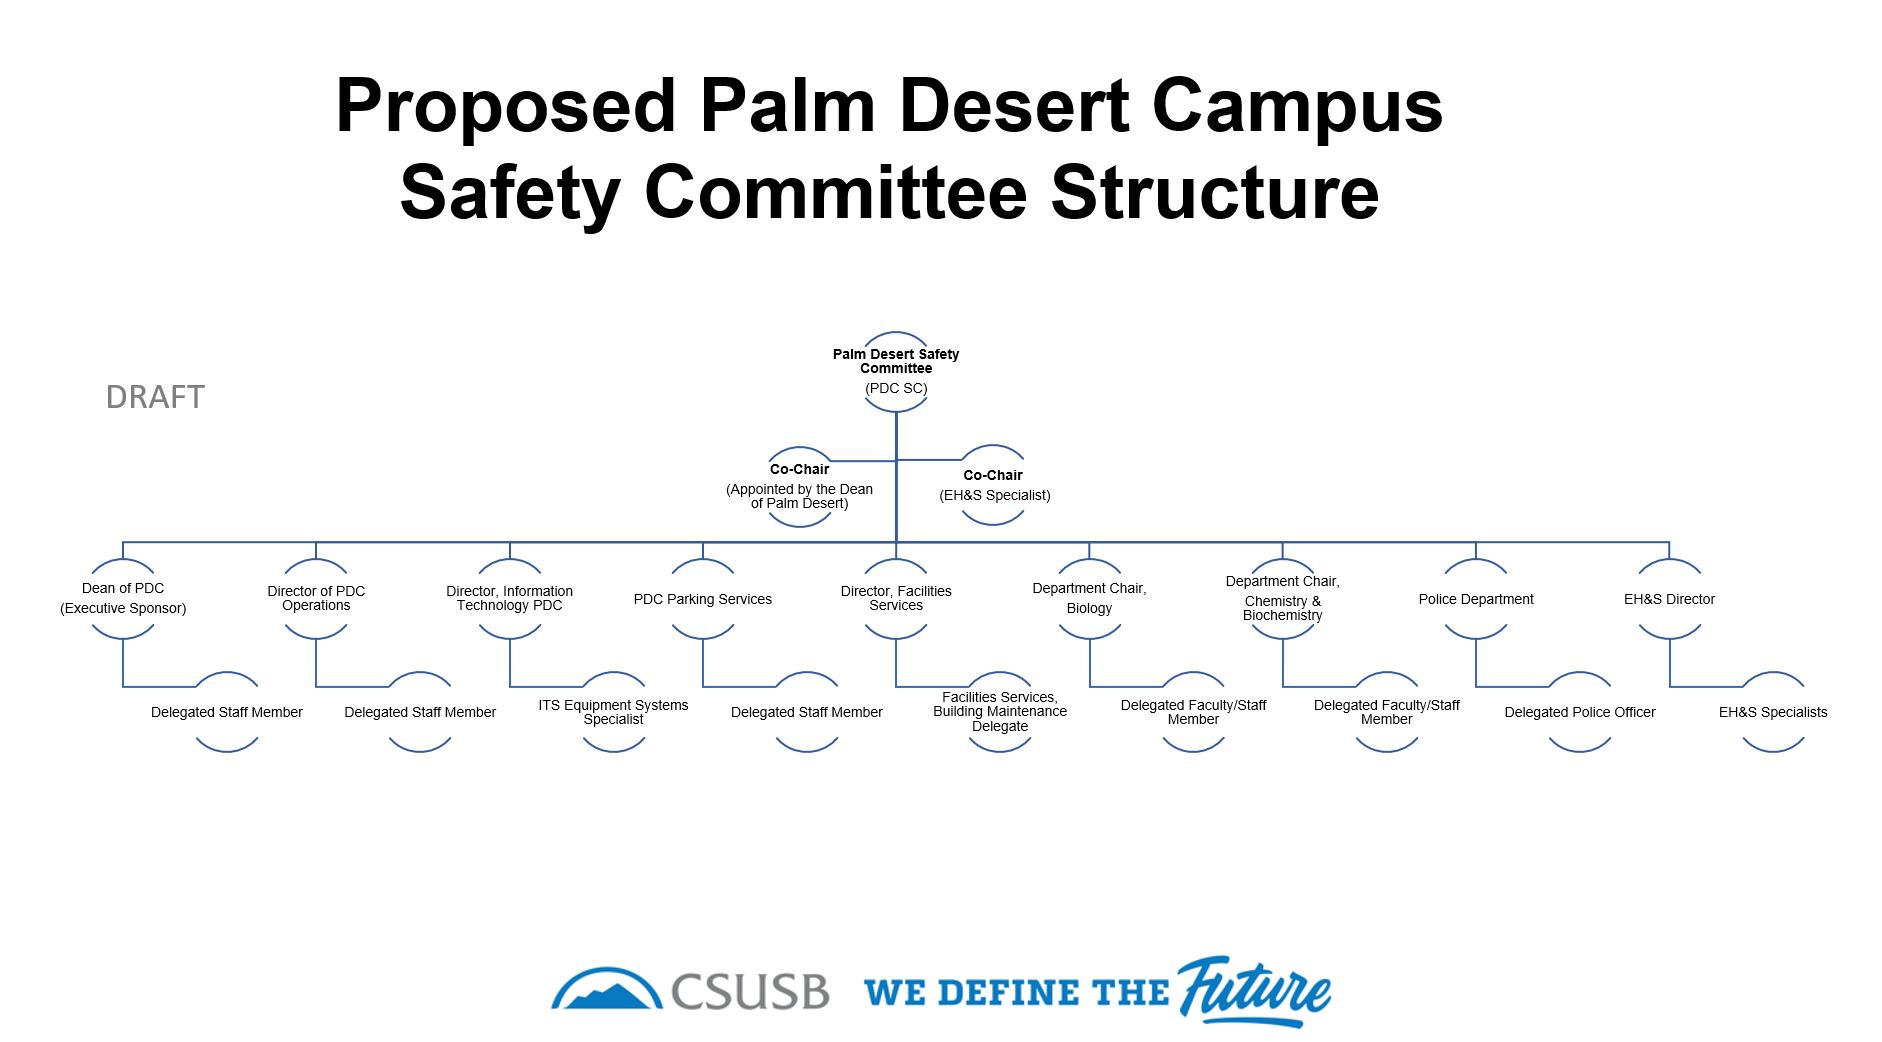 Proposed Palm Desert Campus Safety Committee (PDC SC) Structure